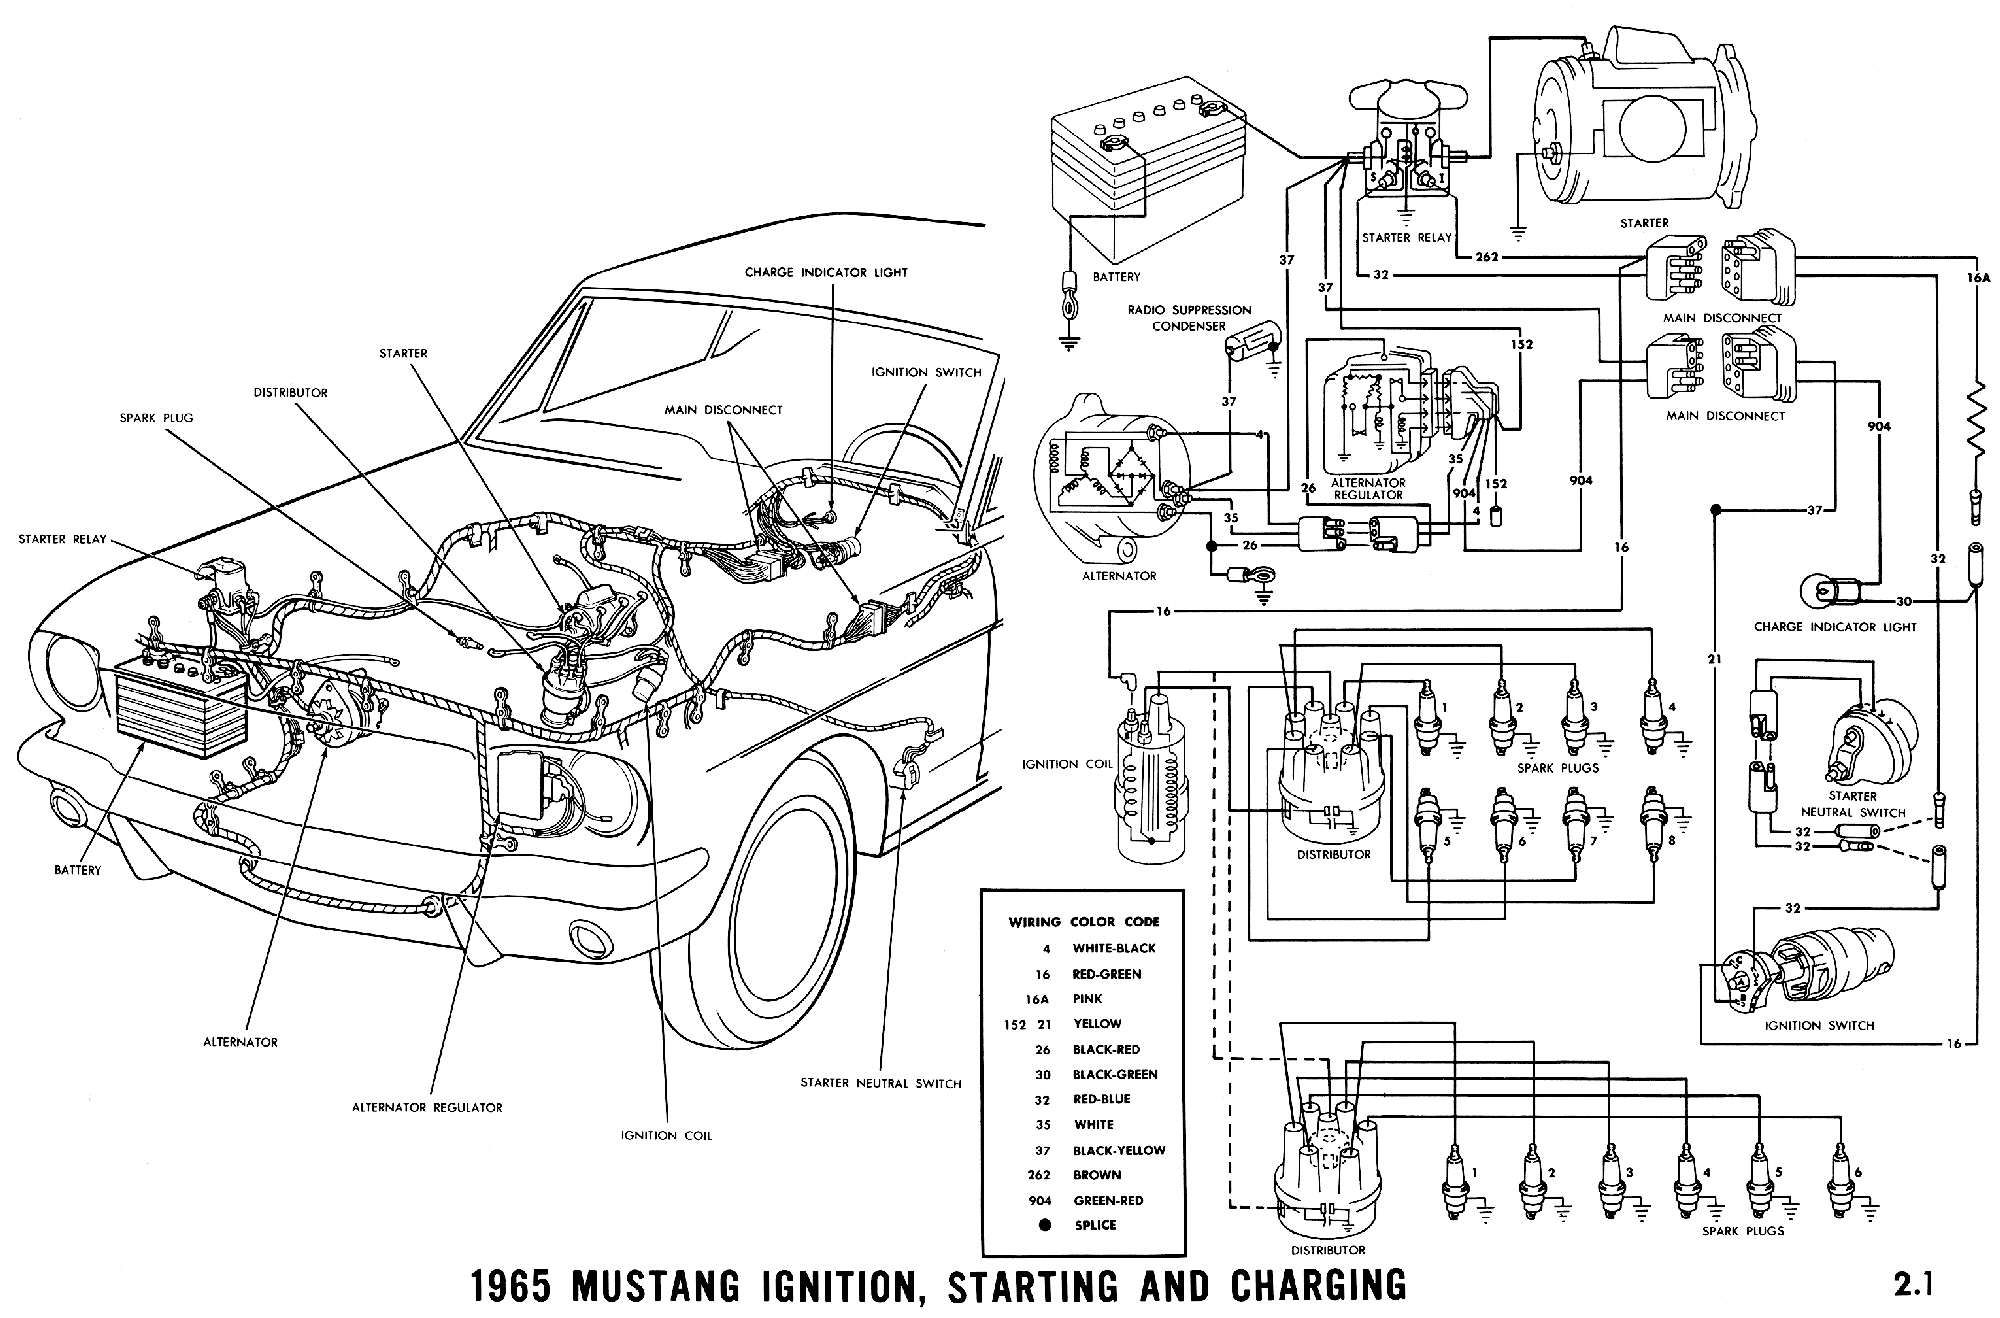 66 mustang coil wiring diagram 66 mustang engine wiring diagram 1965 mustang wiring diagrams - average joe restoration ...